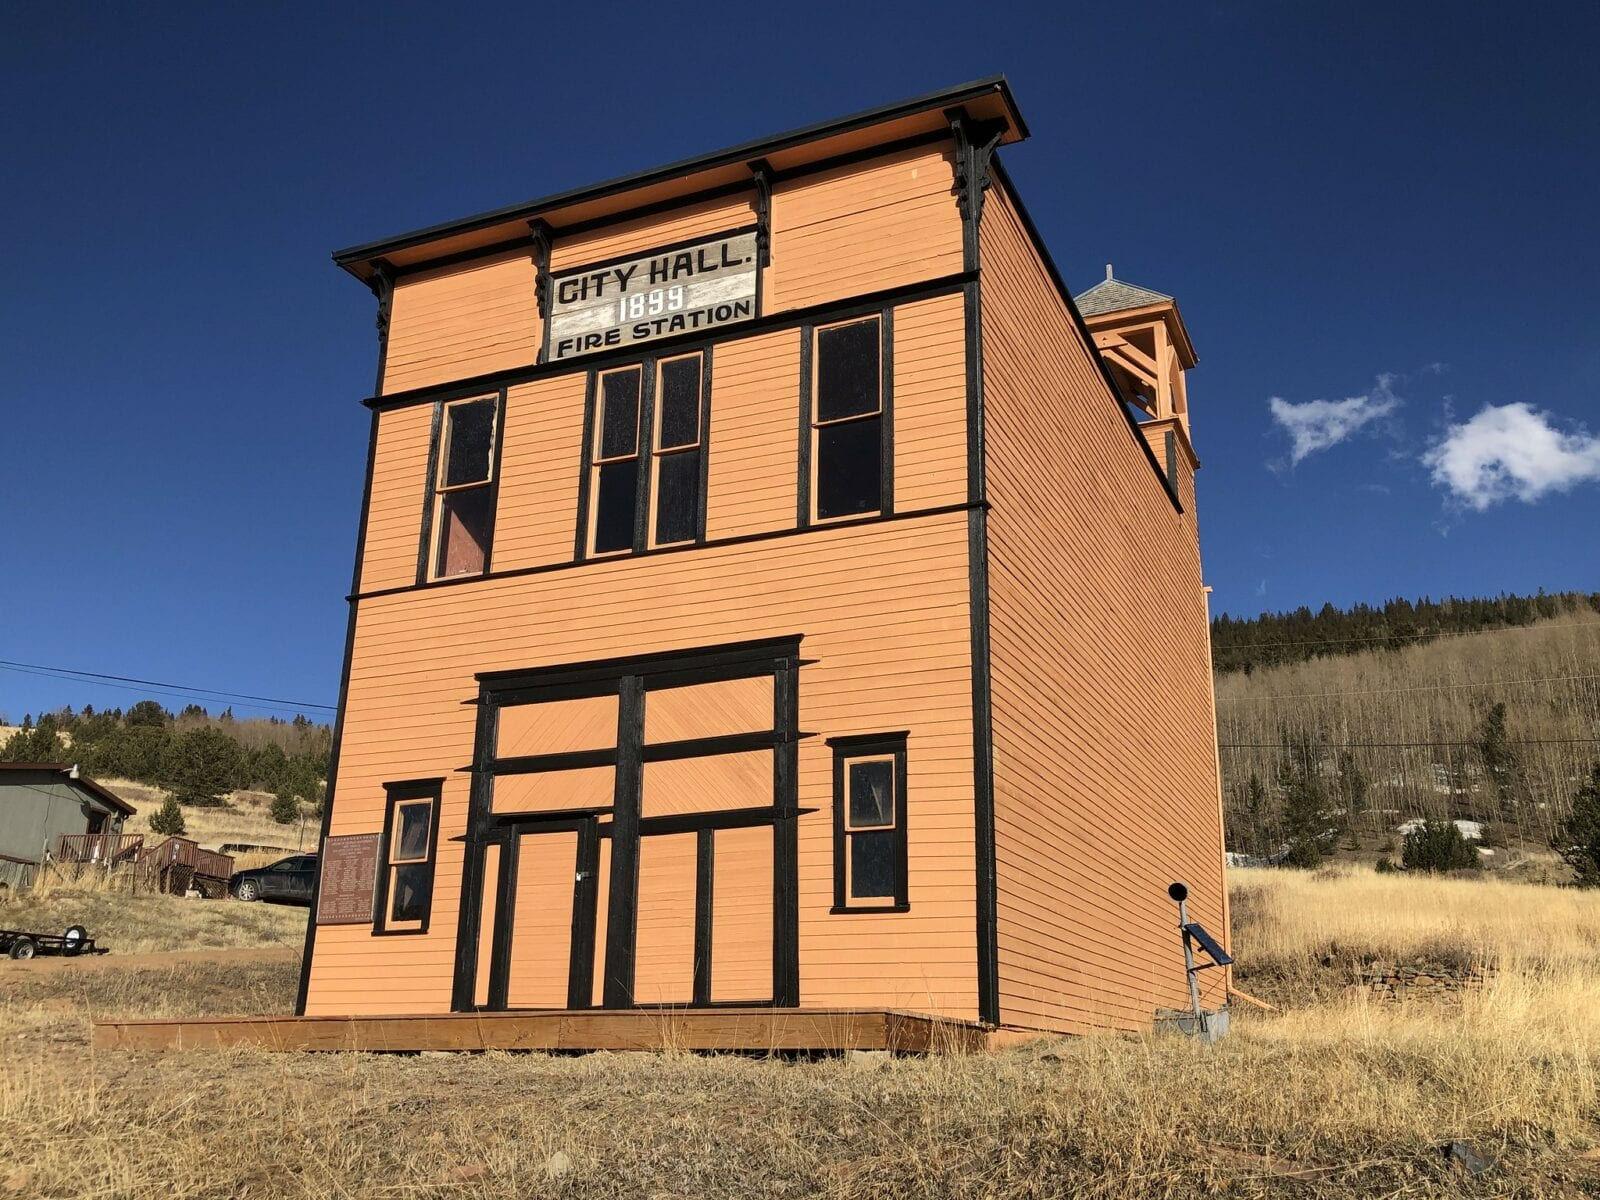 Image of the city hall in goldfield, colorado